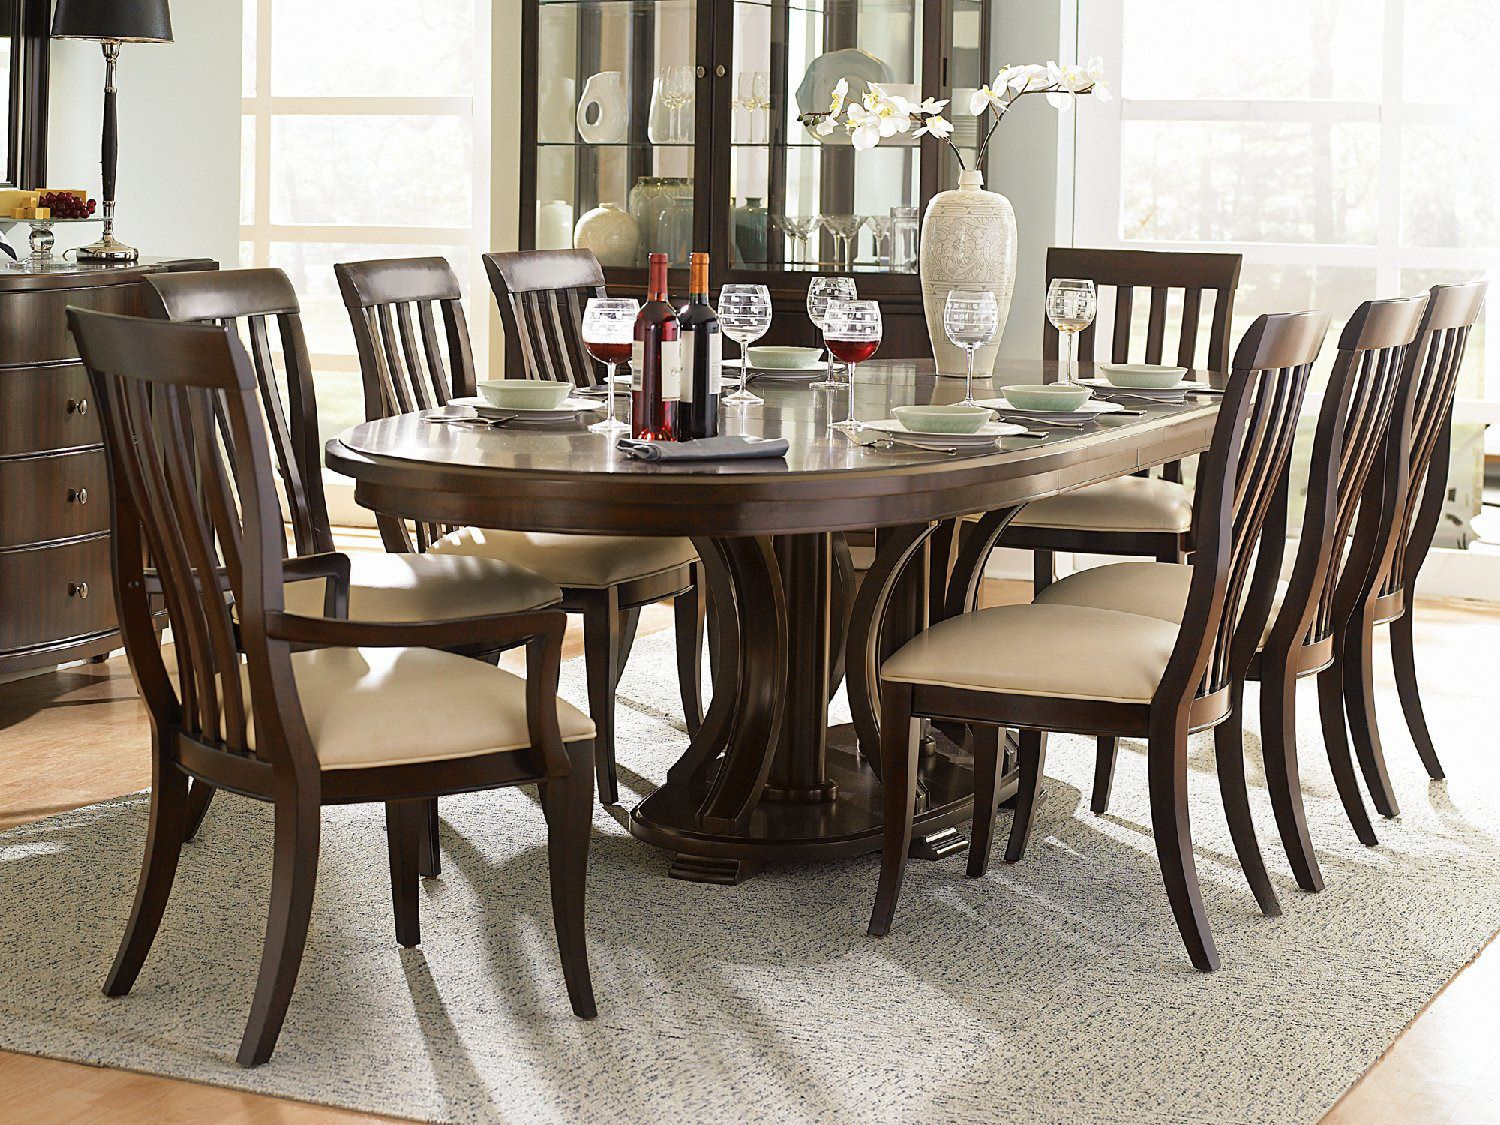 31+ Used dining room chairs set of 4 Ideas